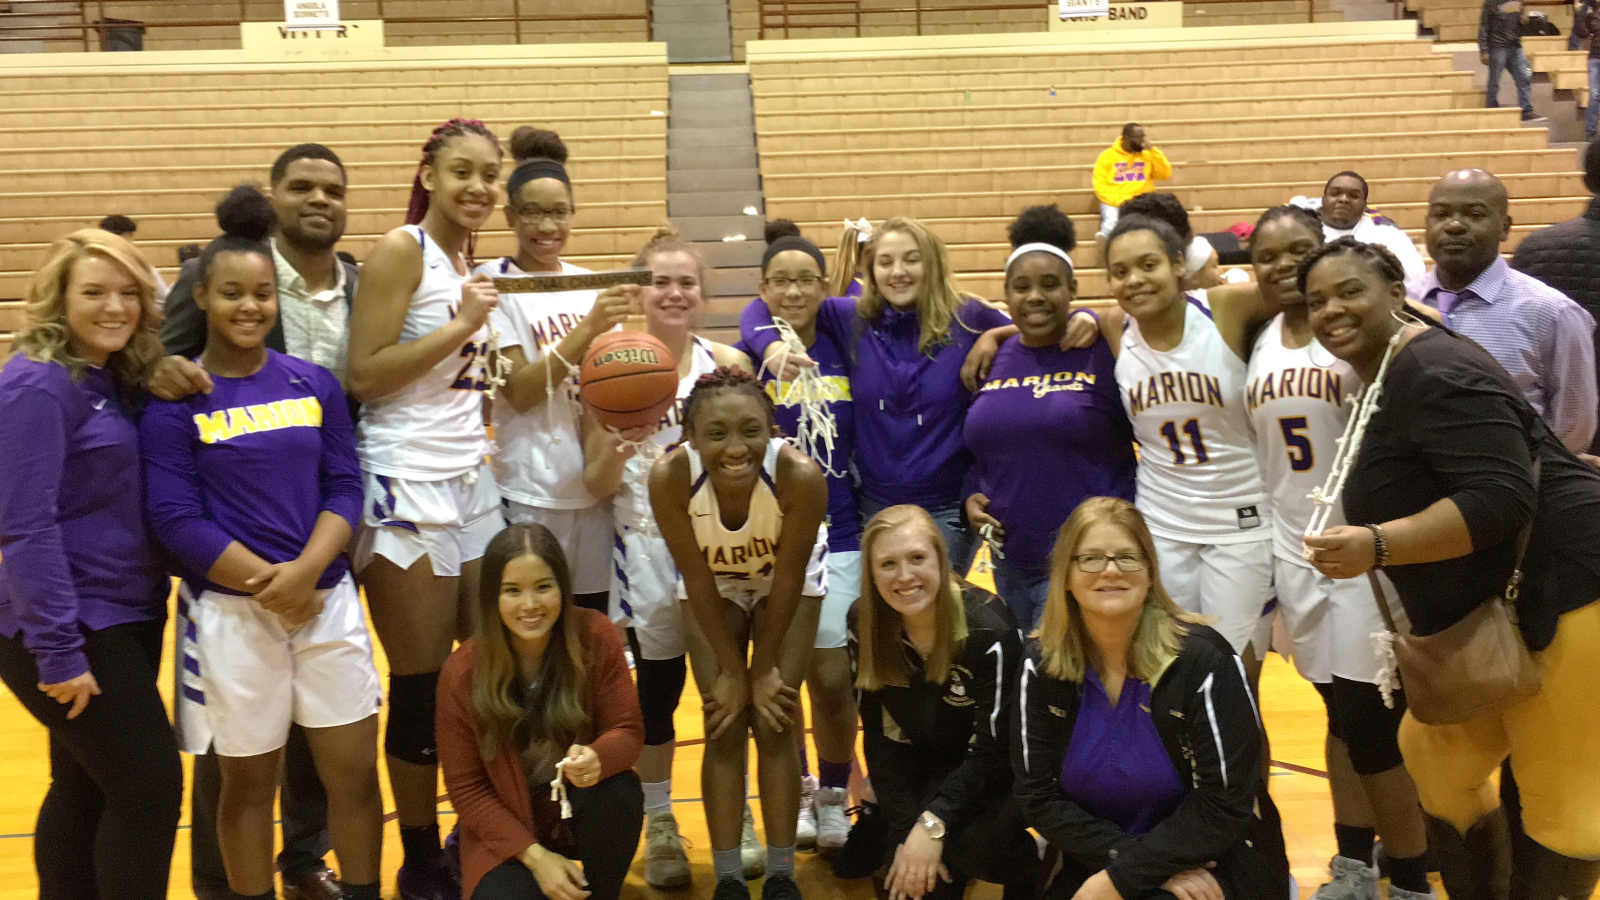 Congratulations Marion Lady Giants #GFND